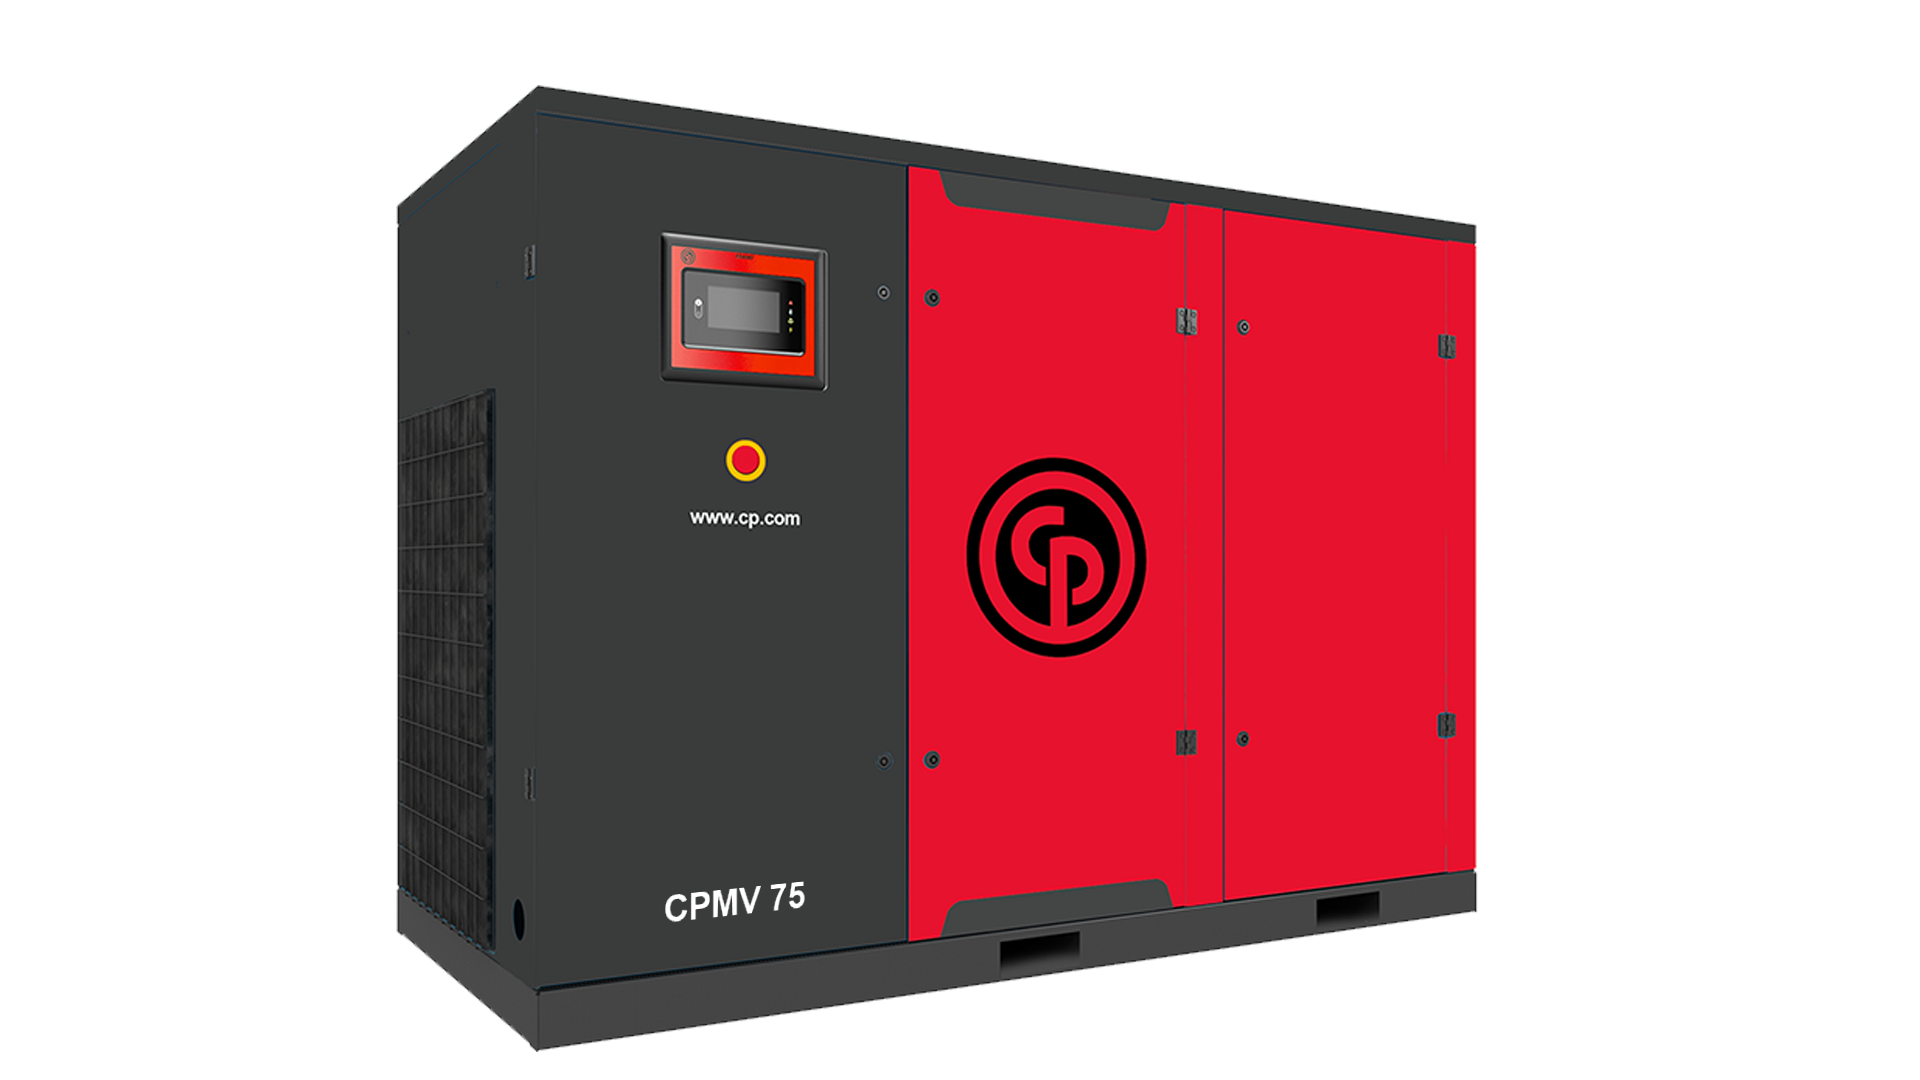 Chicago Pneumatic India launches Permanent Magnet motor compressors from 10-100 HP range, titled as CPMV & CPVS PM